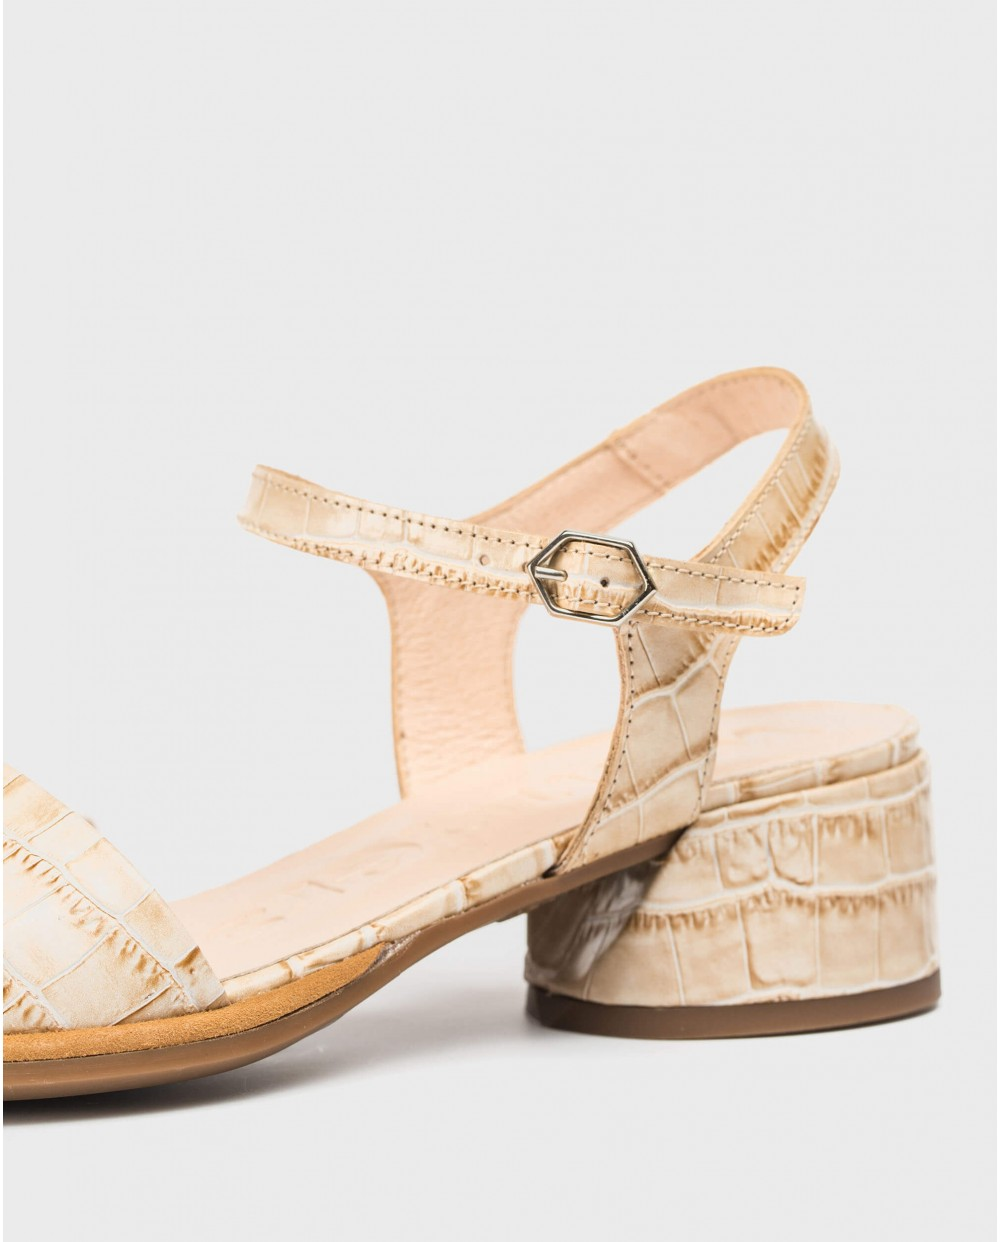 Wonders-Sandals-Mock croc leather sandal